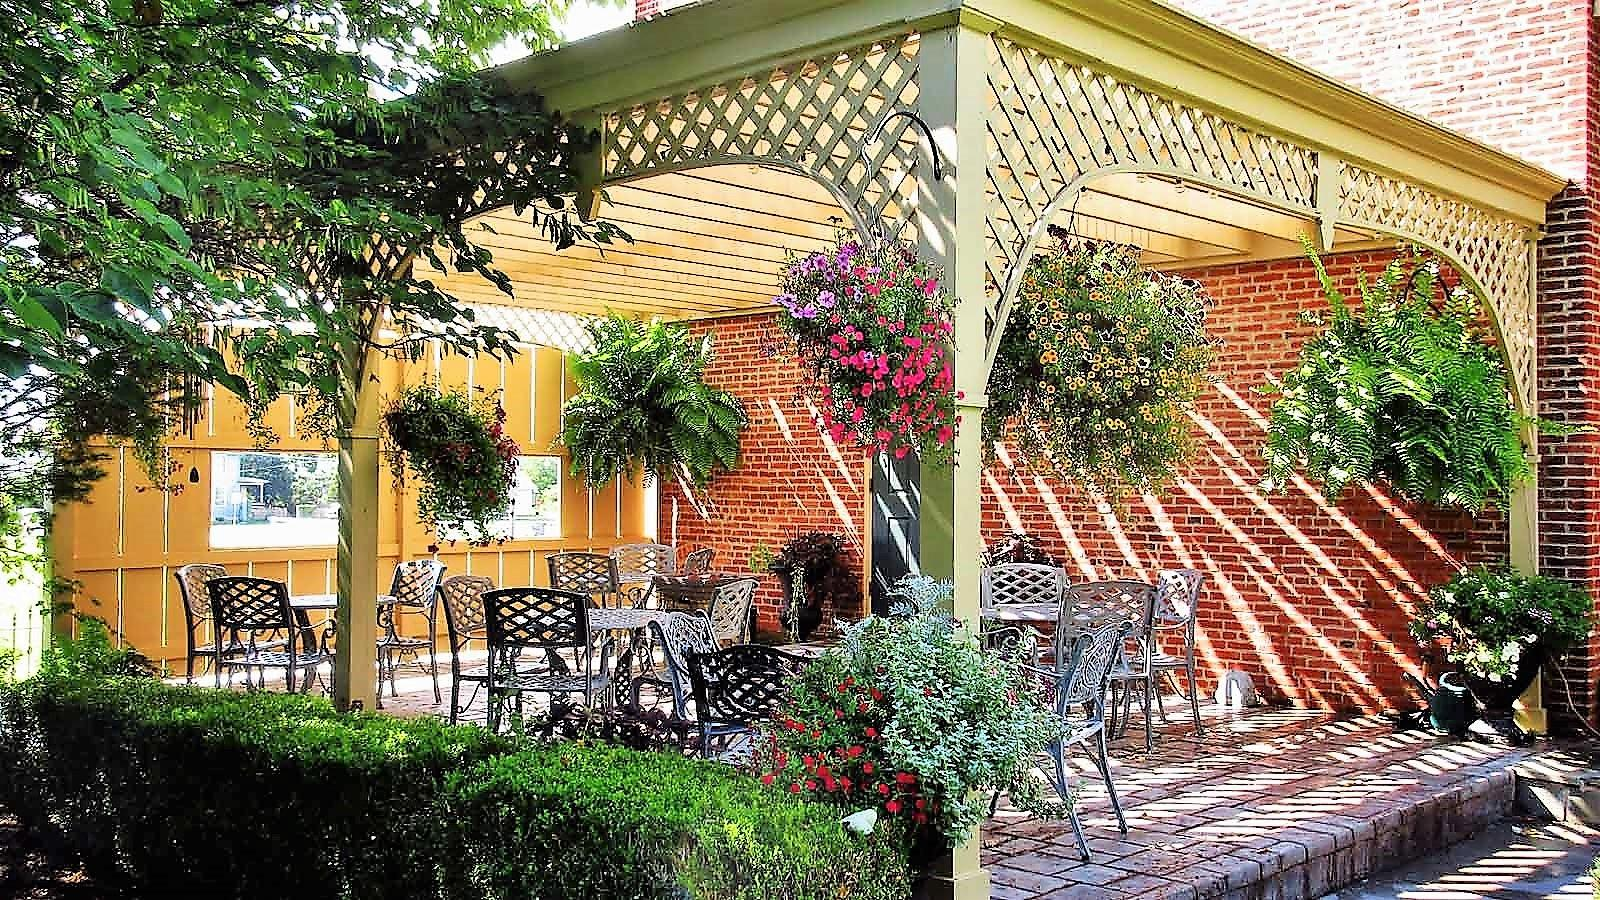 The garden patio of the Londonderry Inn